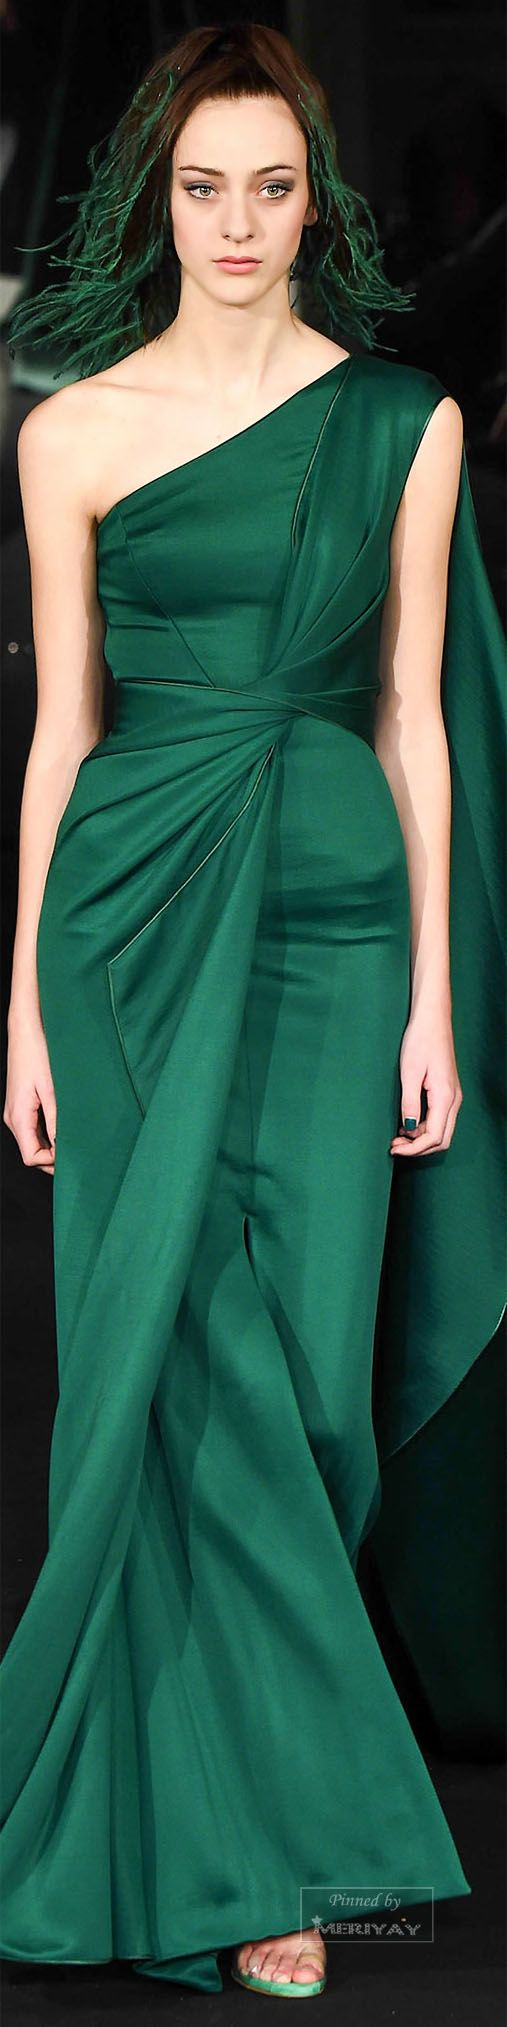 Alexis Mabille - the detail